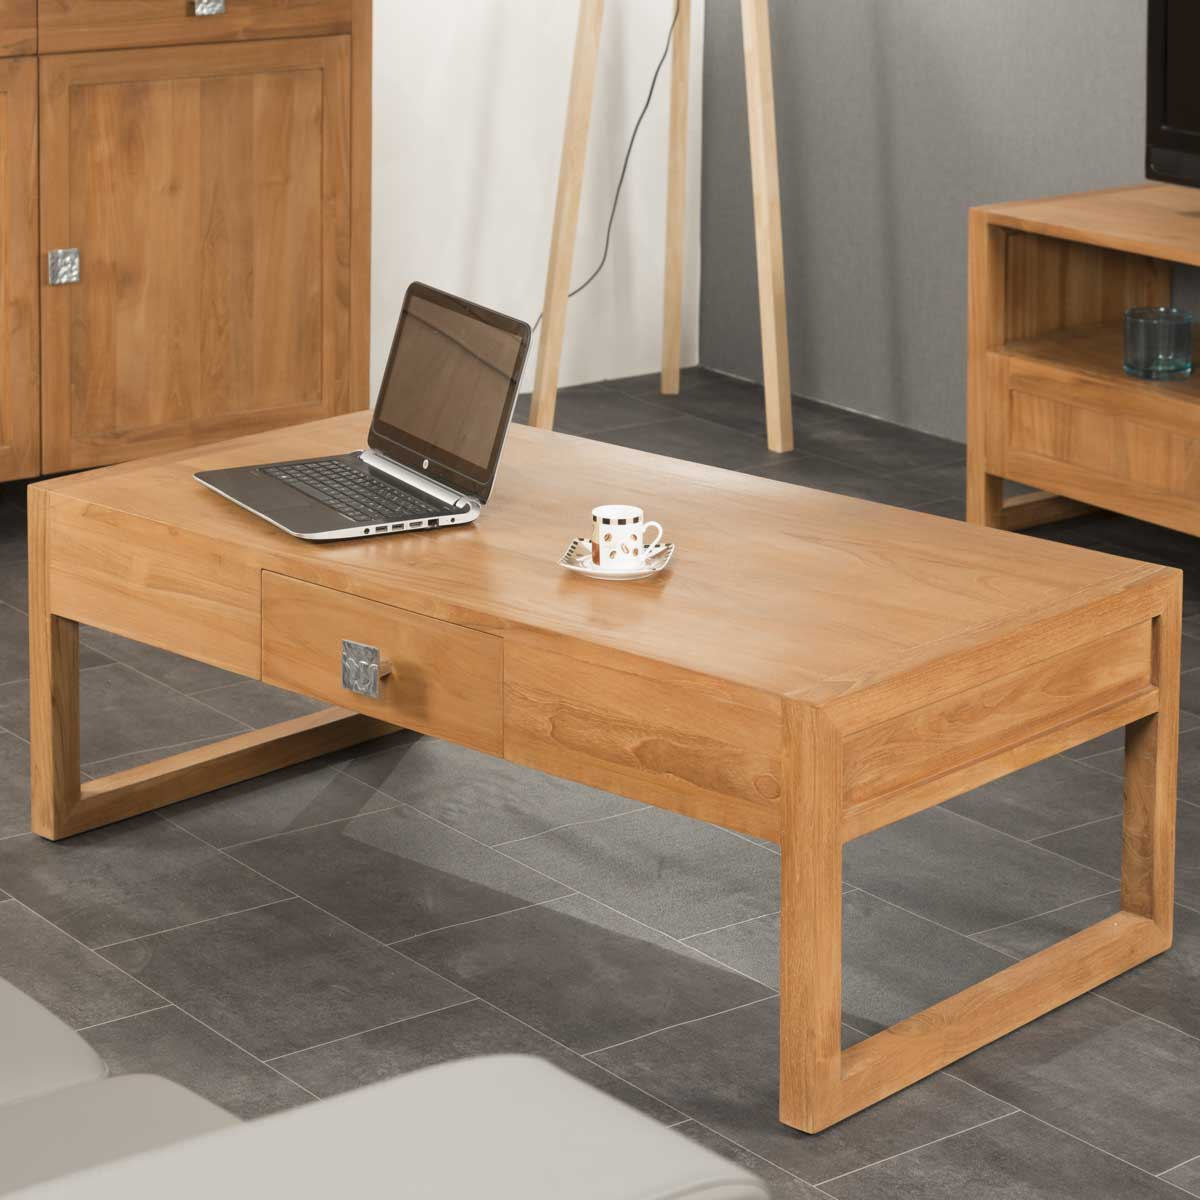 Table basse en teck table basse glenmore en teck massif - Table de salon en teck ...